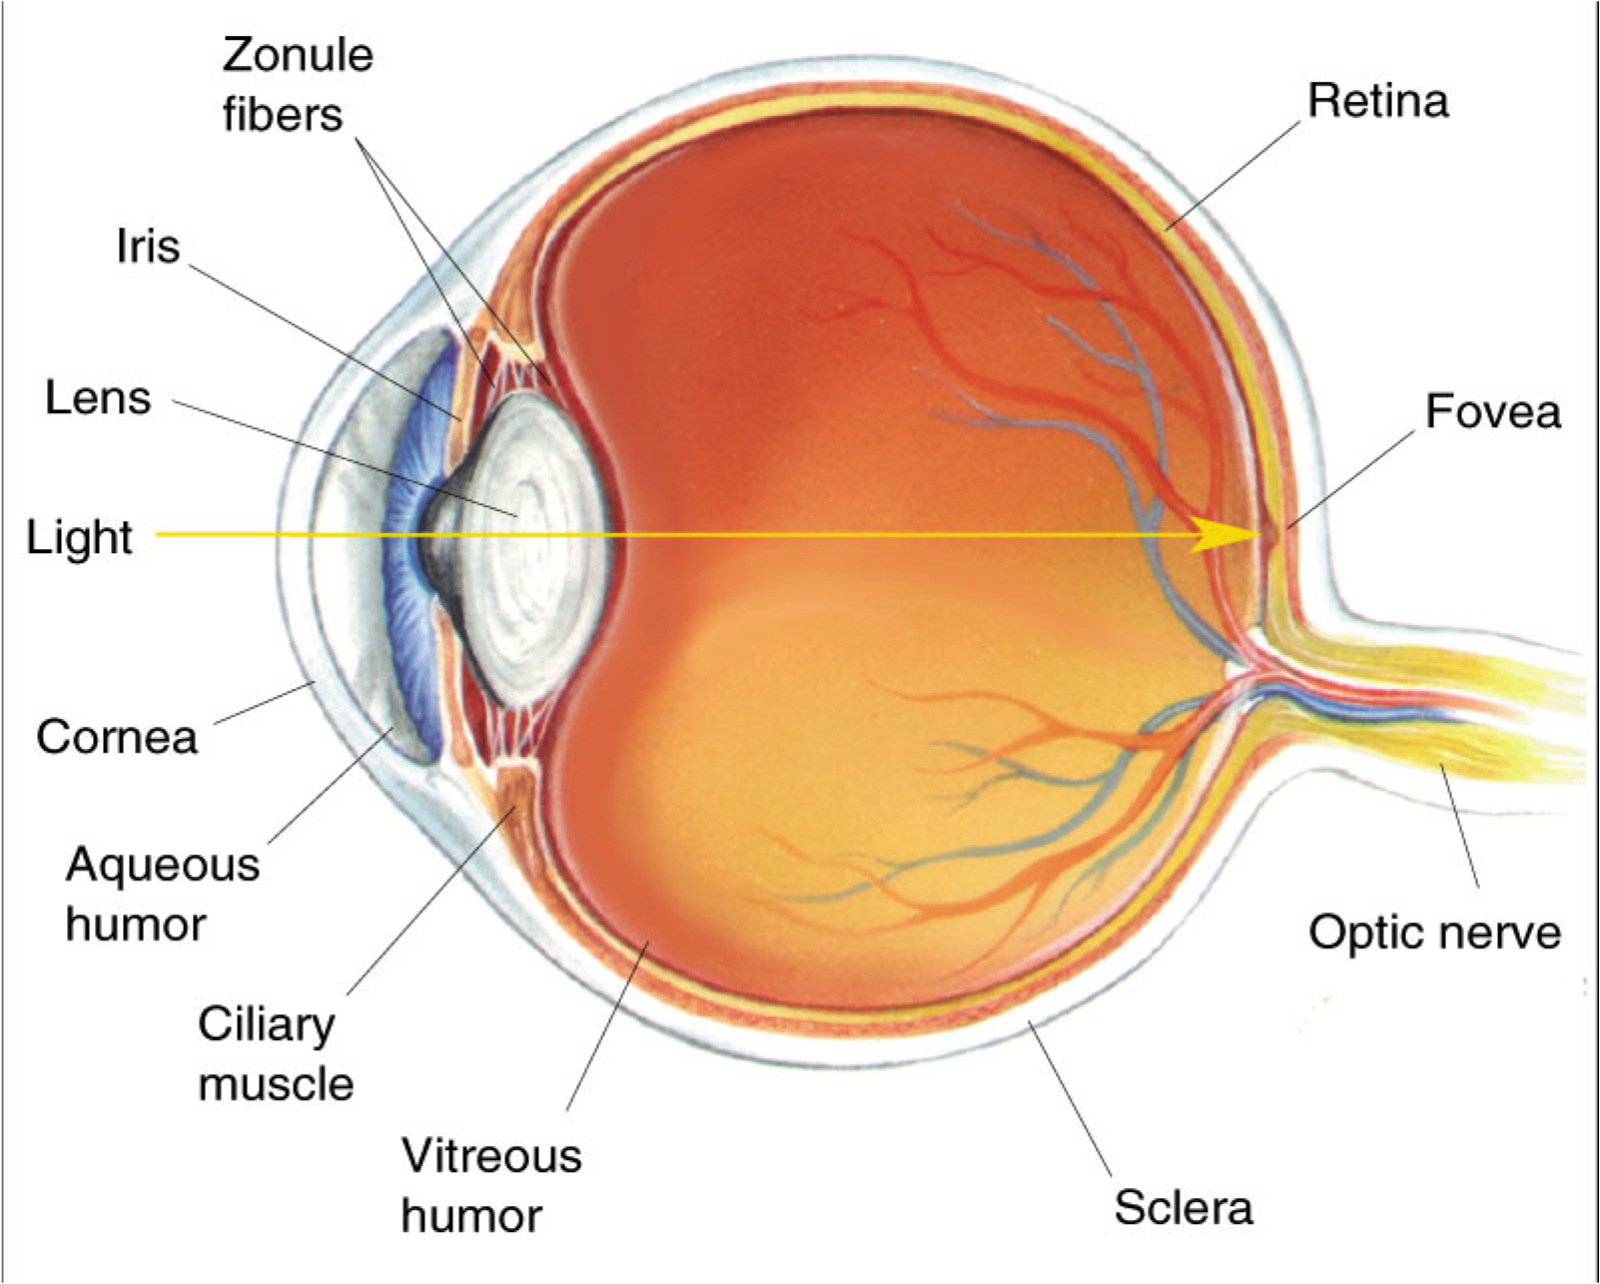 diagram eye label endearing picture of the human eye with labels diagram  without label